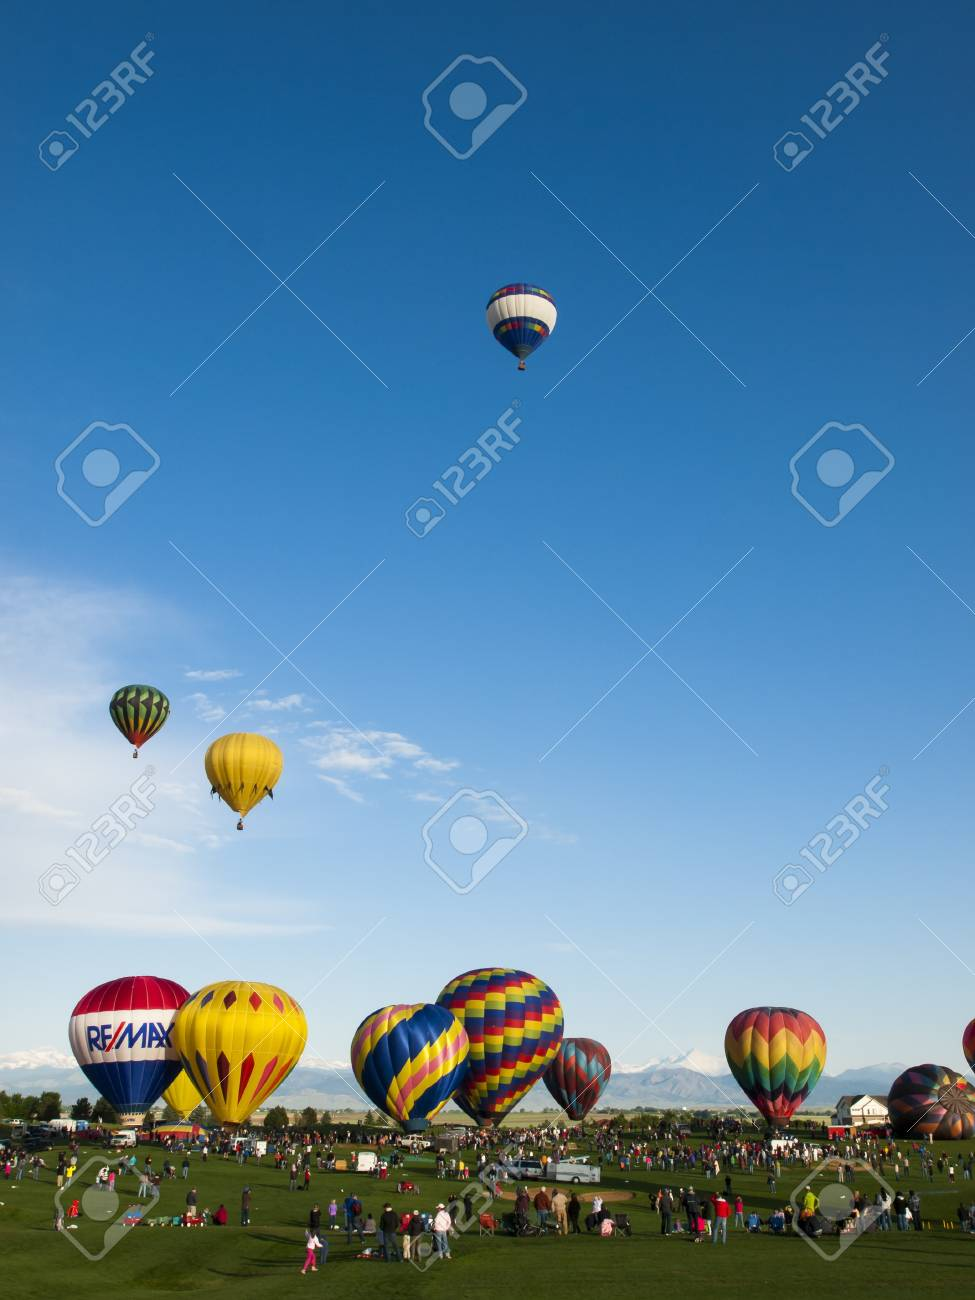 2012 Erie Town Fair and Balloon Festival. The balloon event is part of a day long street fair in the town of Erie. Stock Photo - 13790219